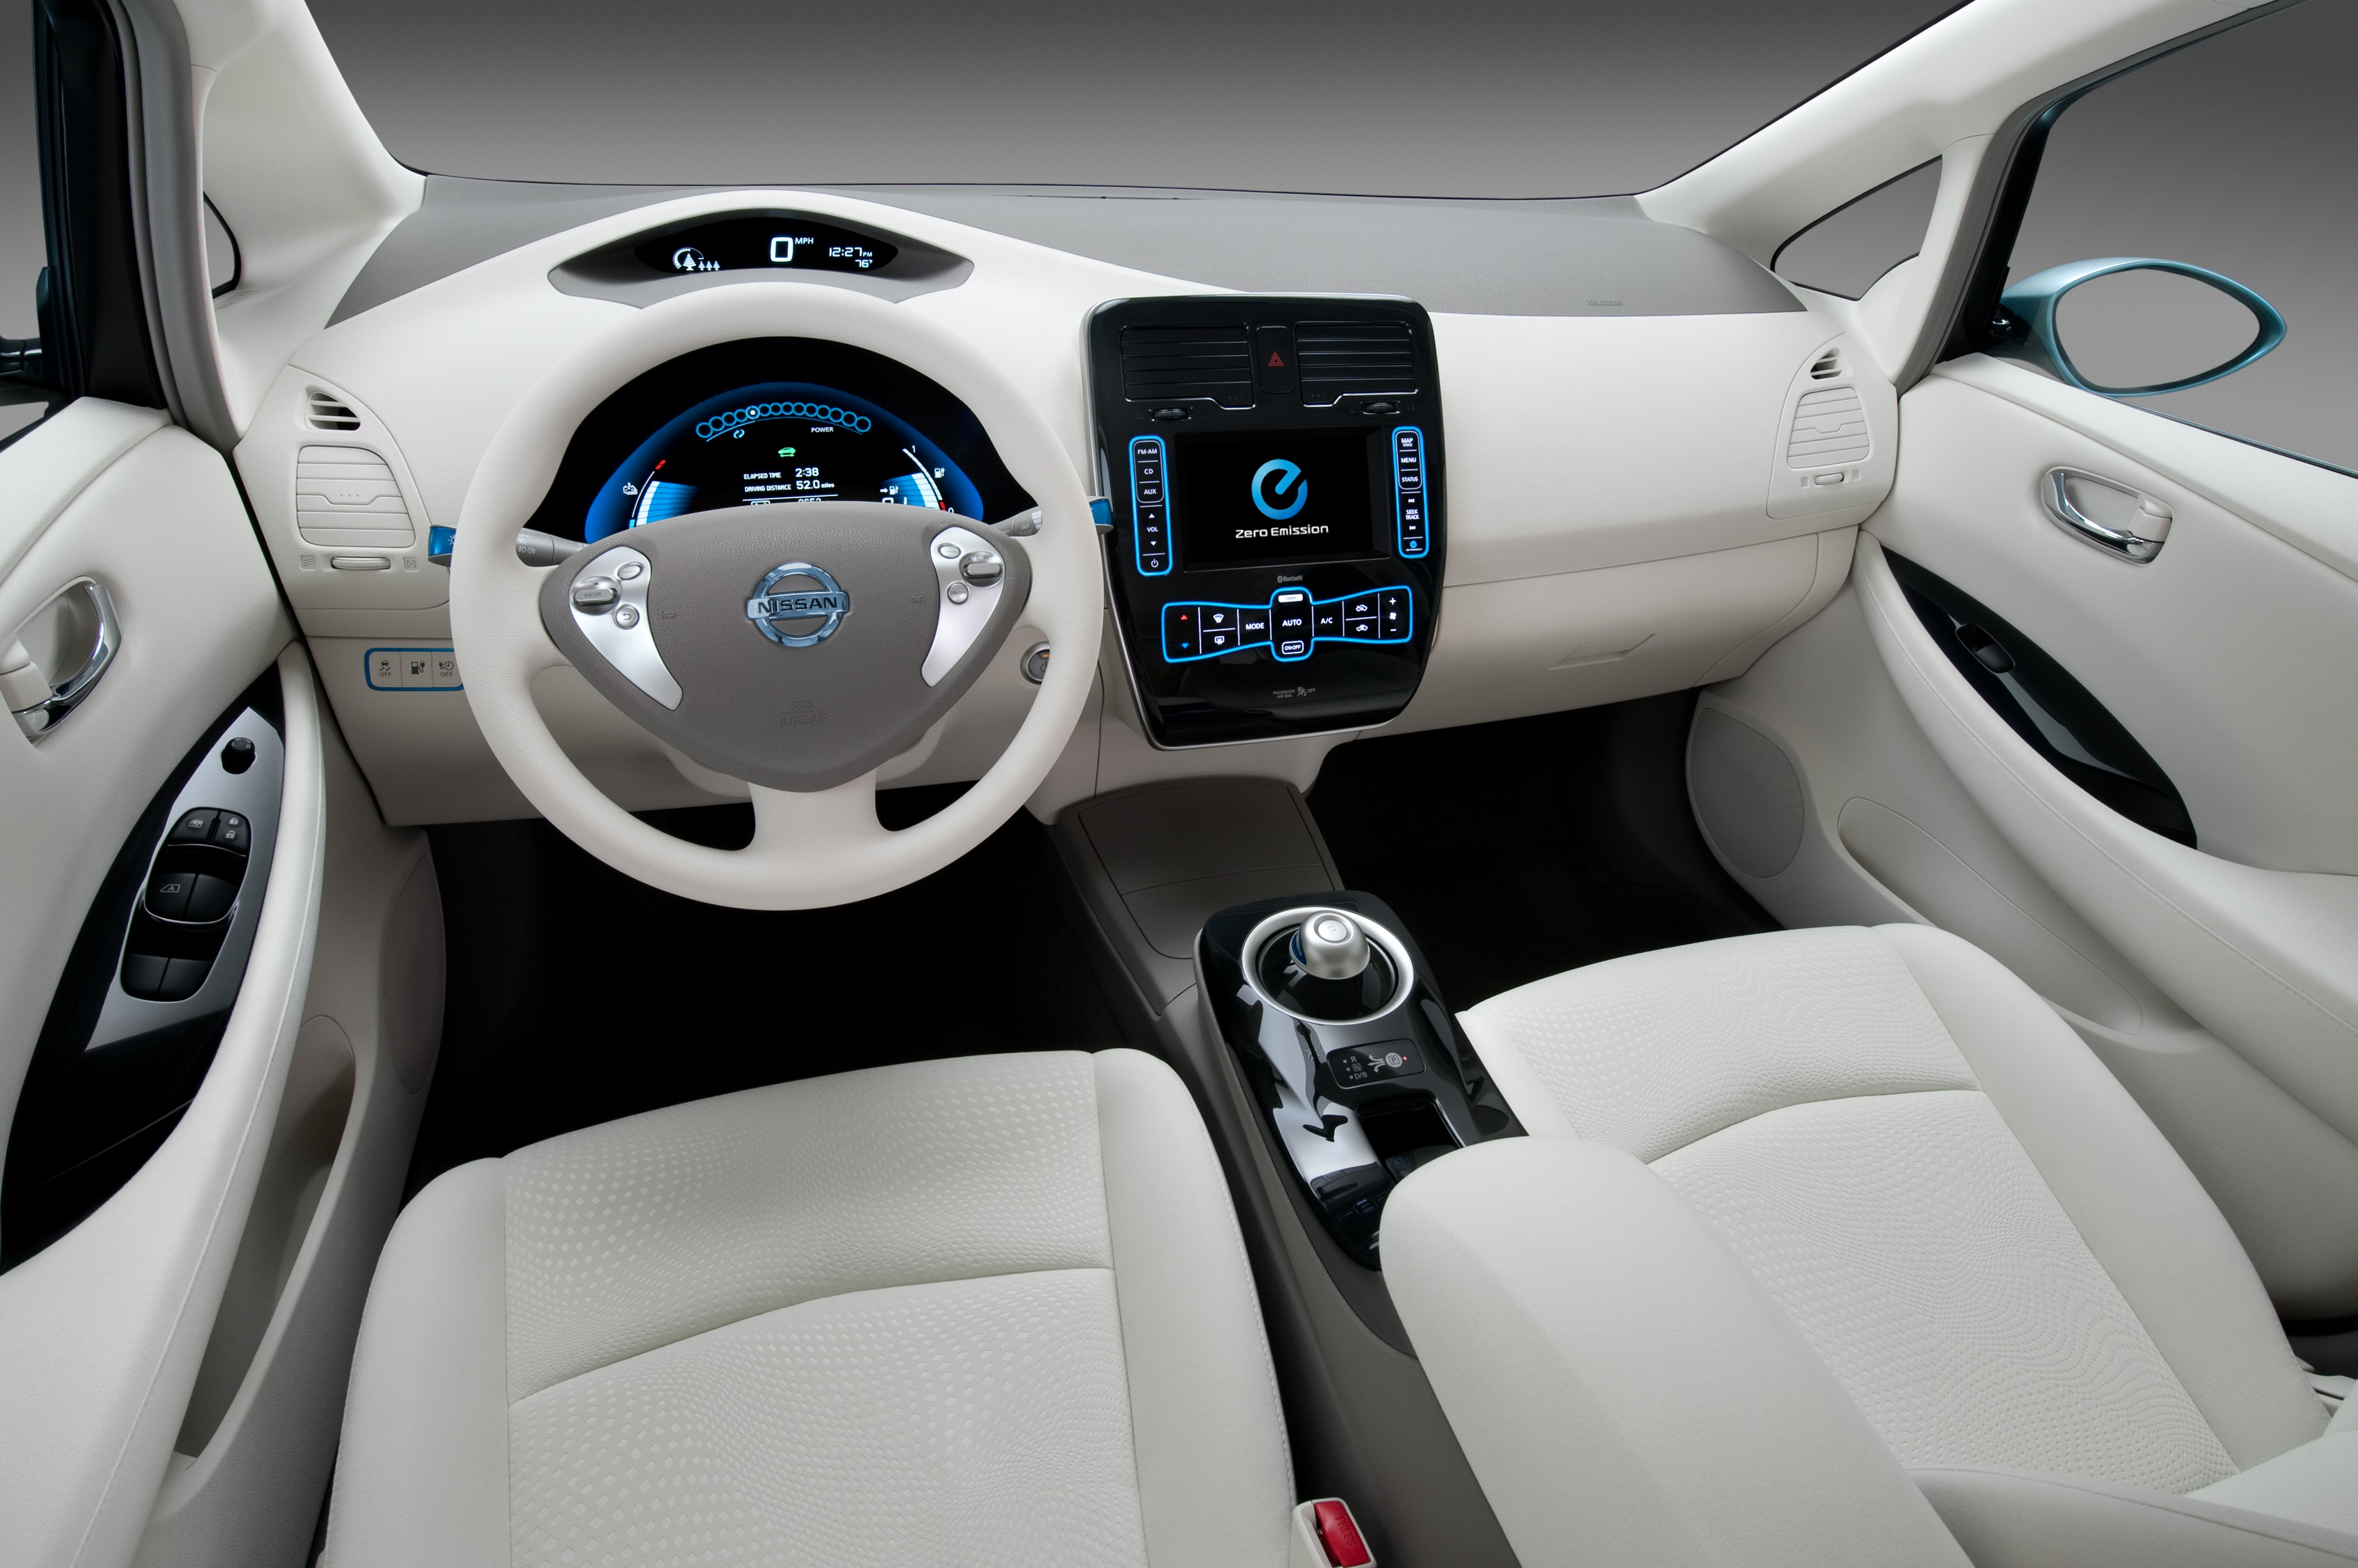 Wallpaper Nissan Leaf Electric Cars Nissan Interior City Cars